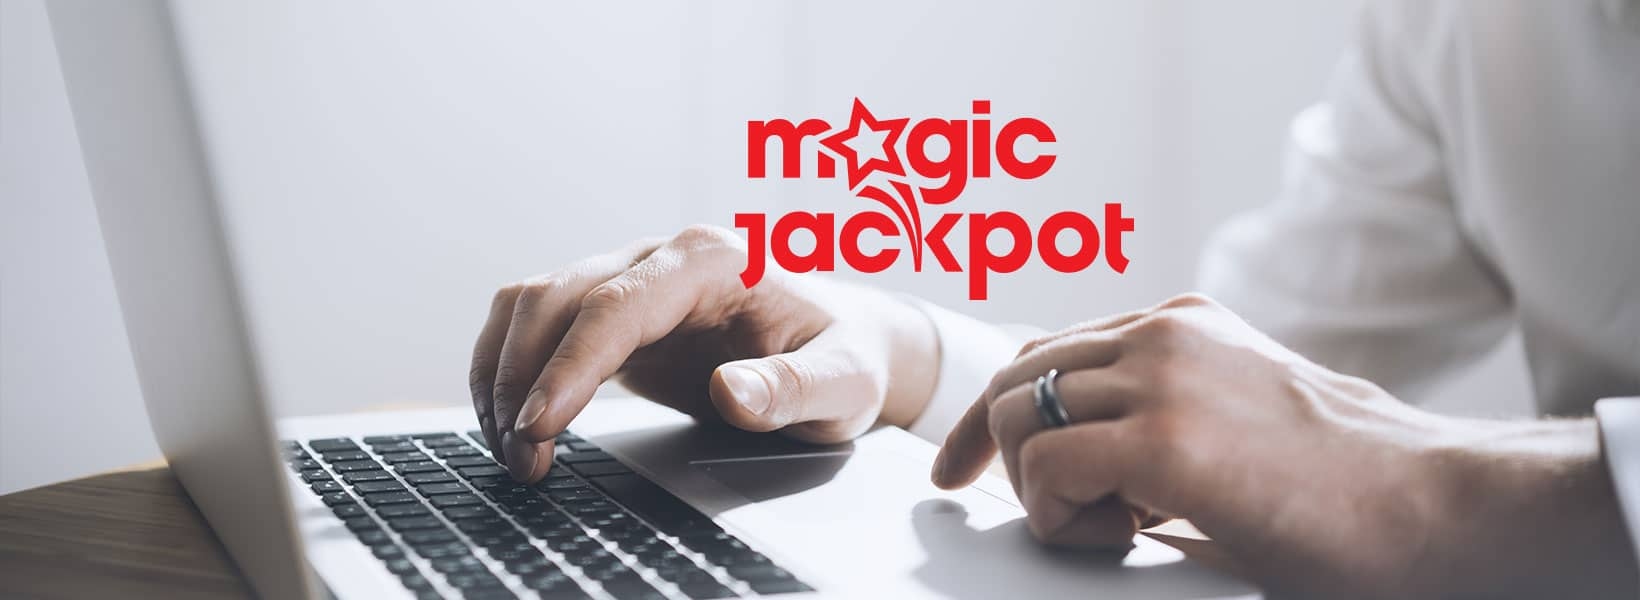 înregistrare magic jackpot